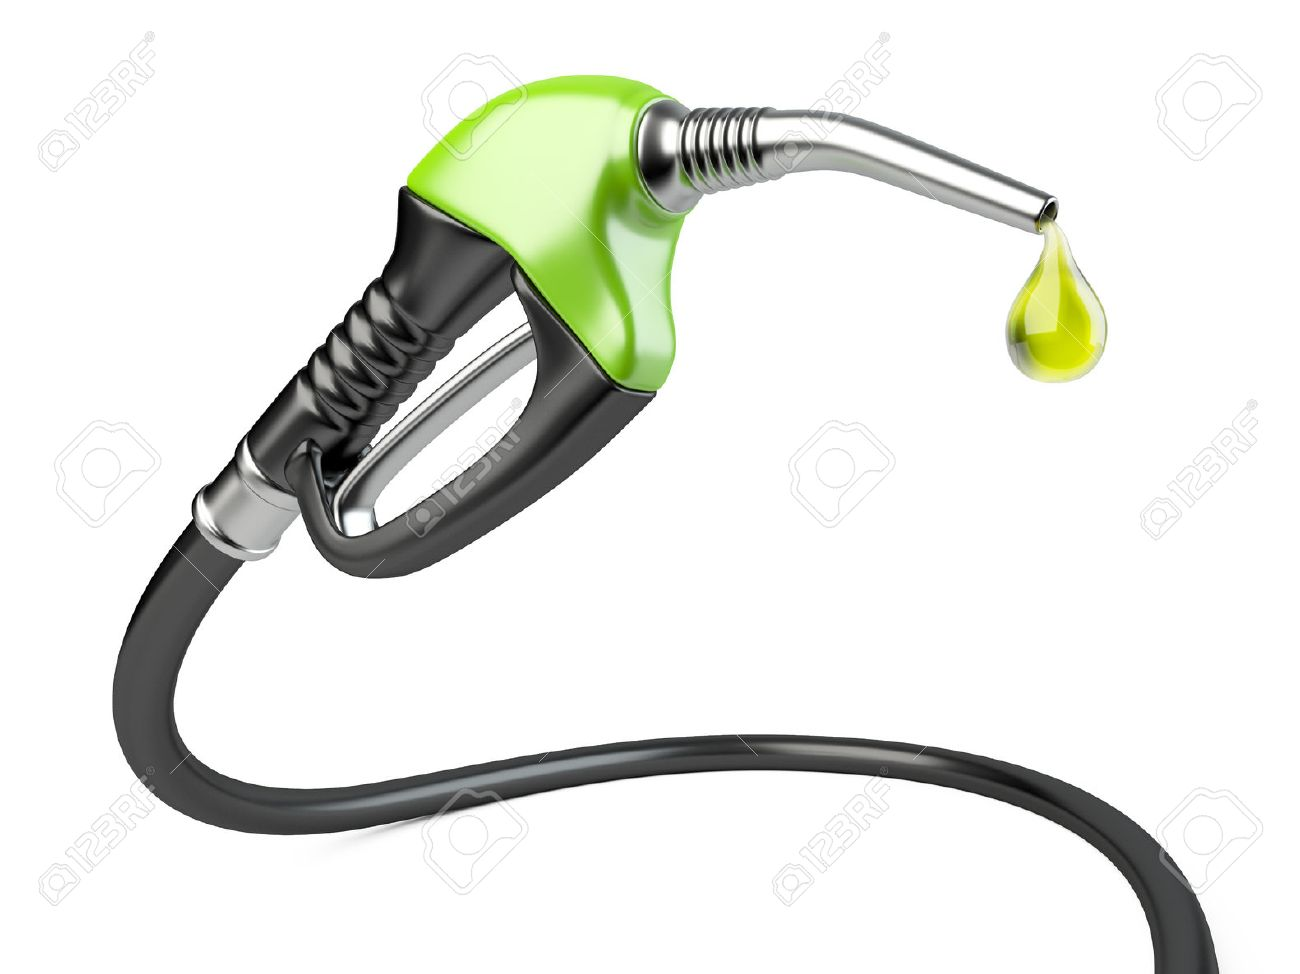 Image result for petrol nozzle